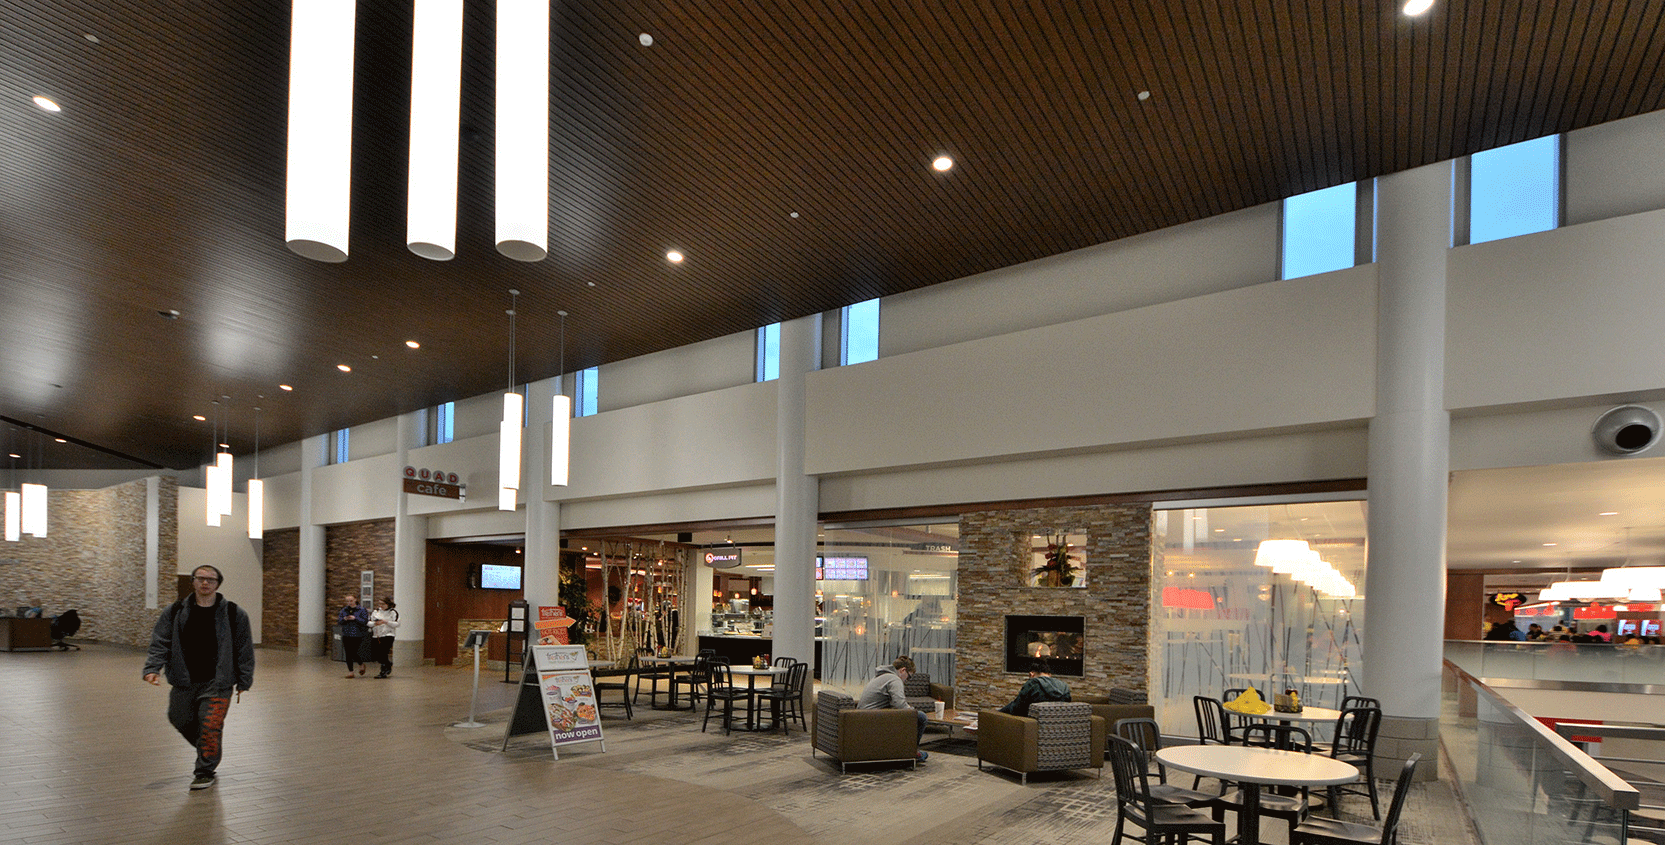 Ferris-State-University-University-Center-Food-Court-Entrance-1665x845